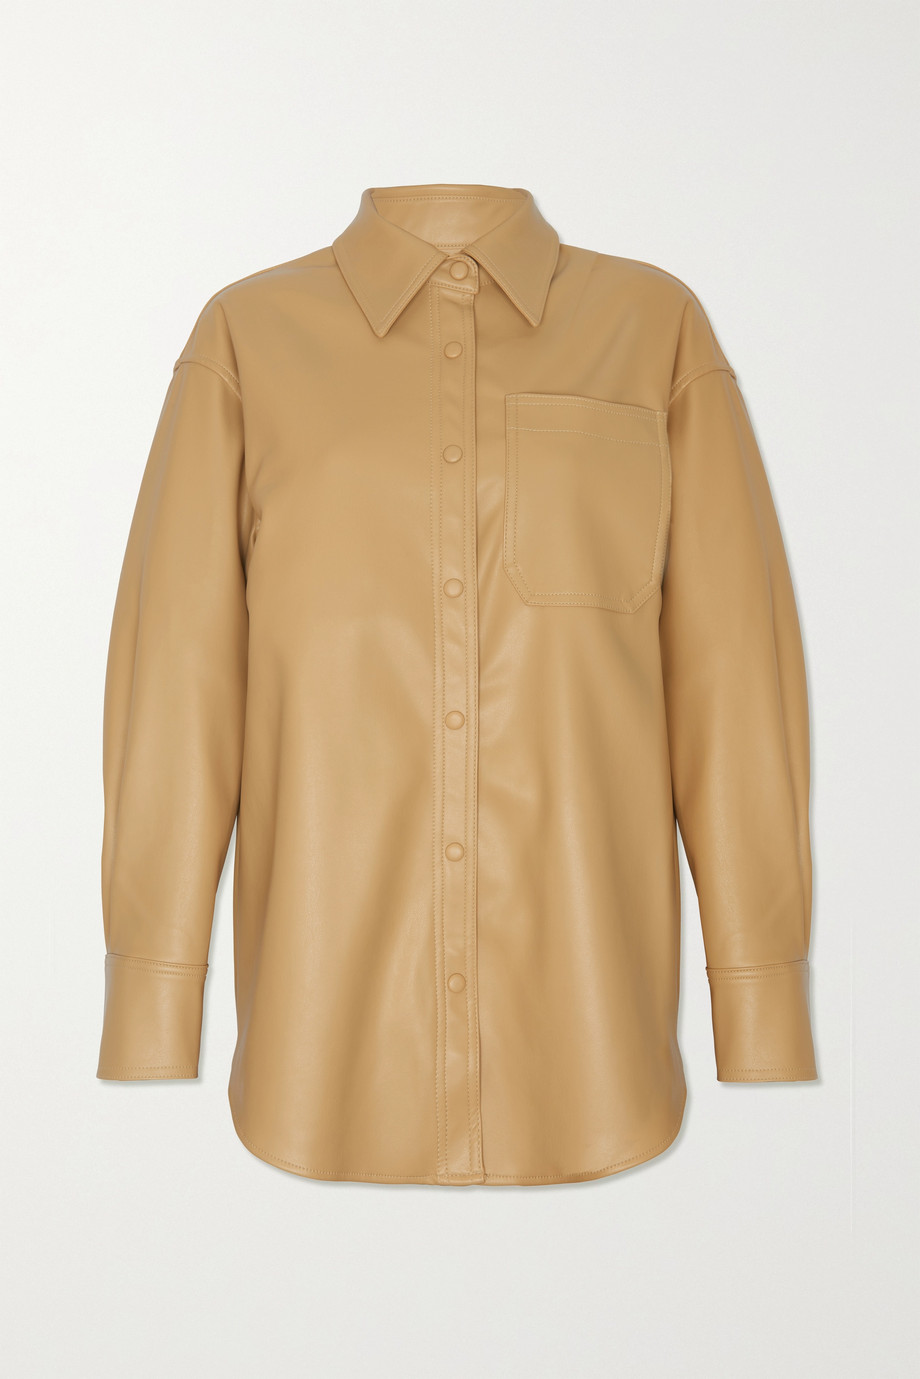 Frankie Shop Yoyo oversized faux leather shirt